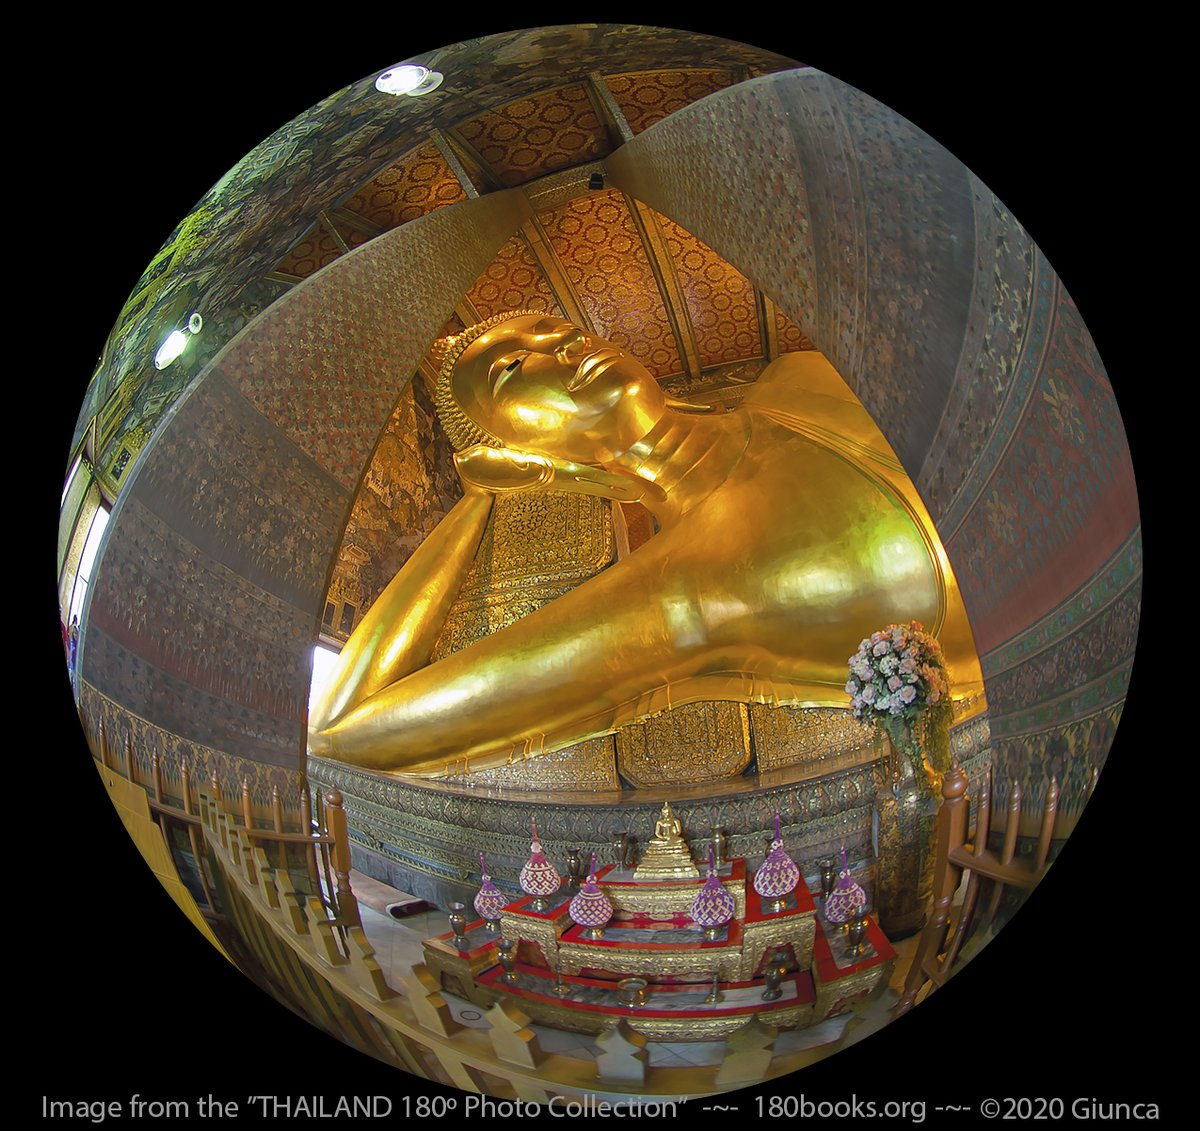 Todays Featured #THAILAND180º Photo: Reclining Buddha Image ~ Bangkok, Thailand -This 46 m long, 15 m high Buddha image fills the chapel of Wat Po & is a must-see. #ReviewThailand #ThePhotoHour #180books #DailyPhoto #ThaiTemple #AmazingThailand #FotoRshot #Buddhism